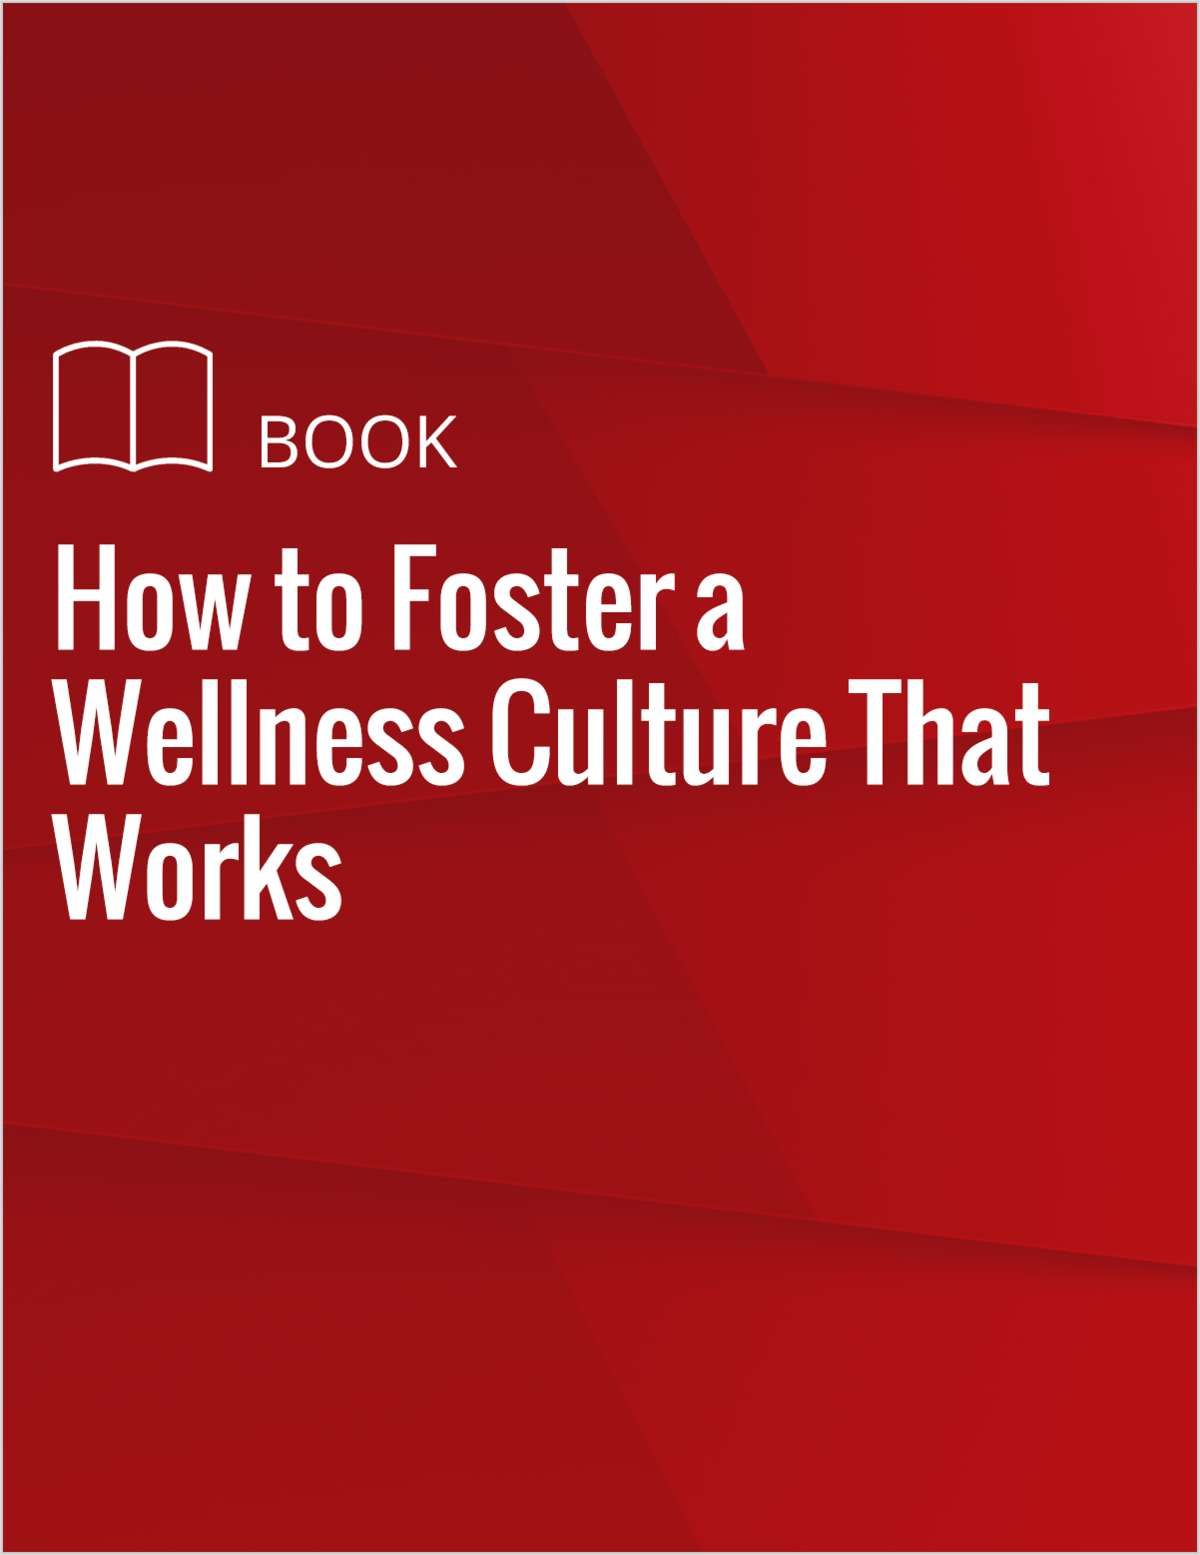 How to Foster a Wellness Culture That Works